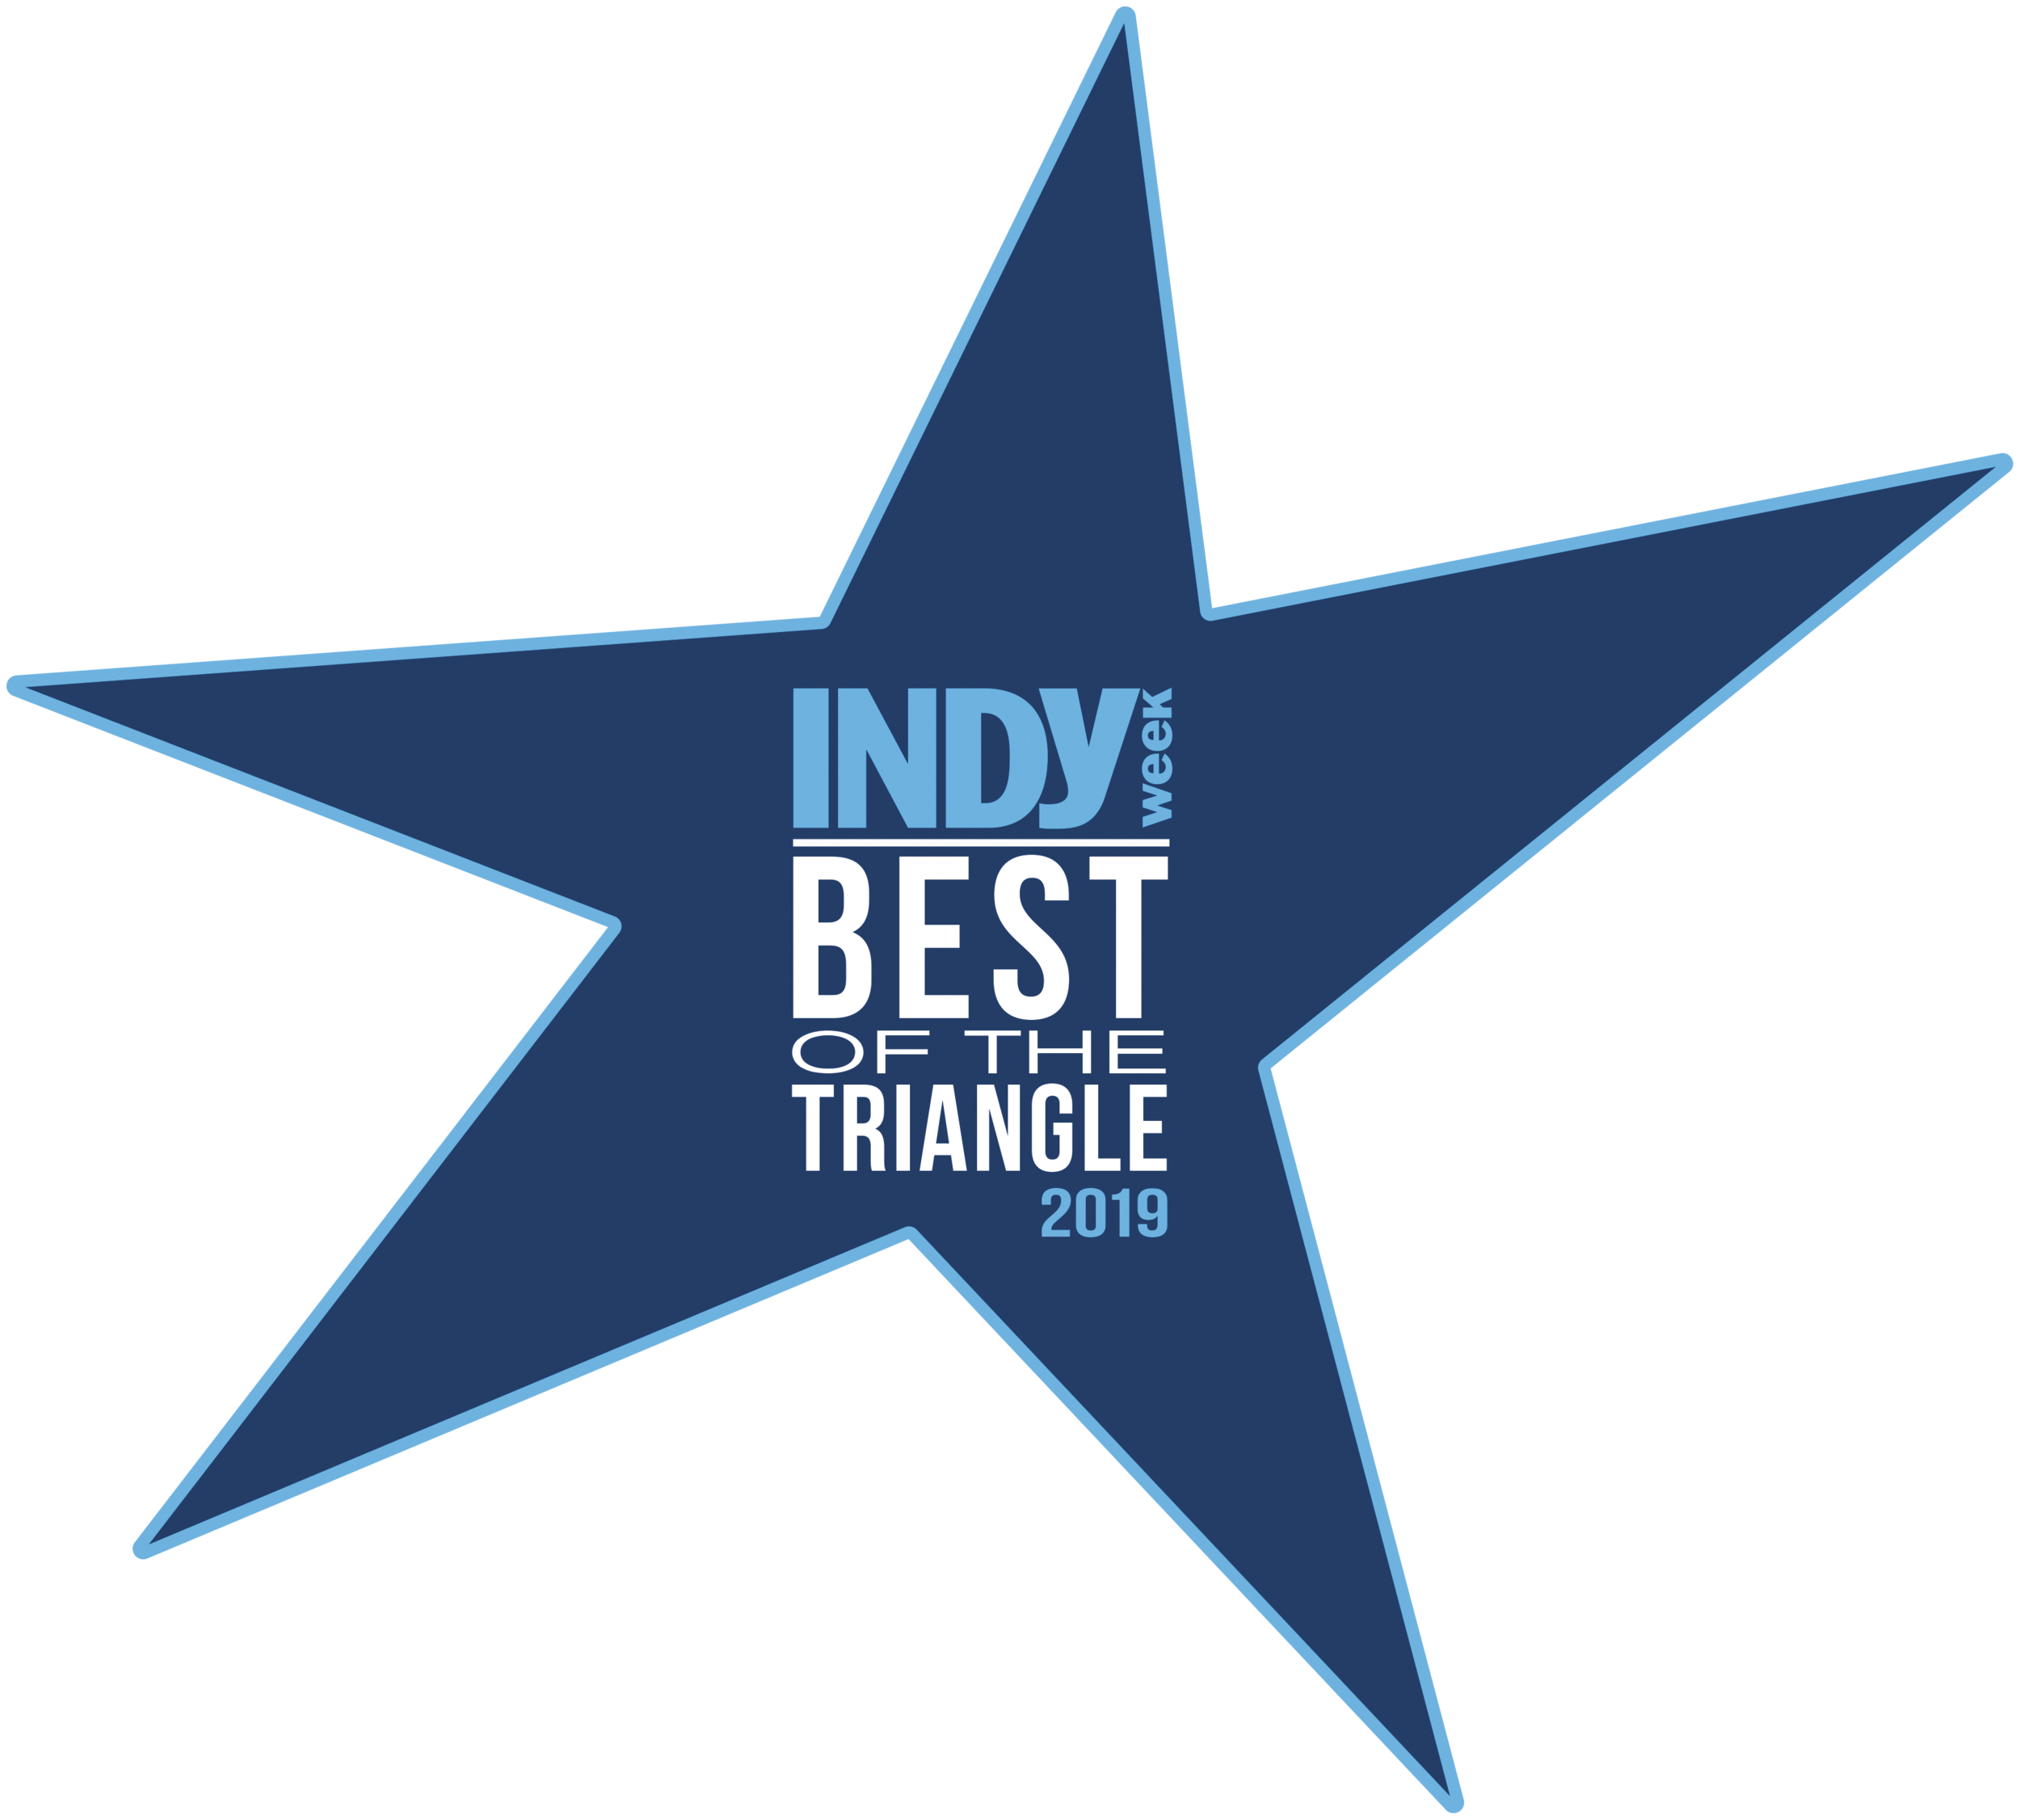 Indyweek Best of the Triangle 2019